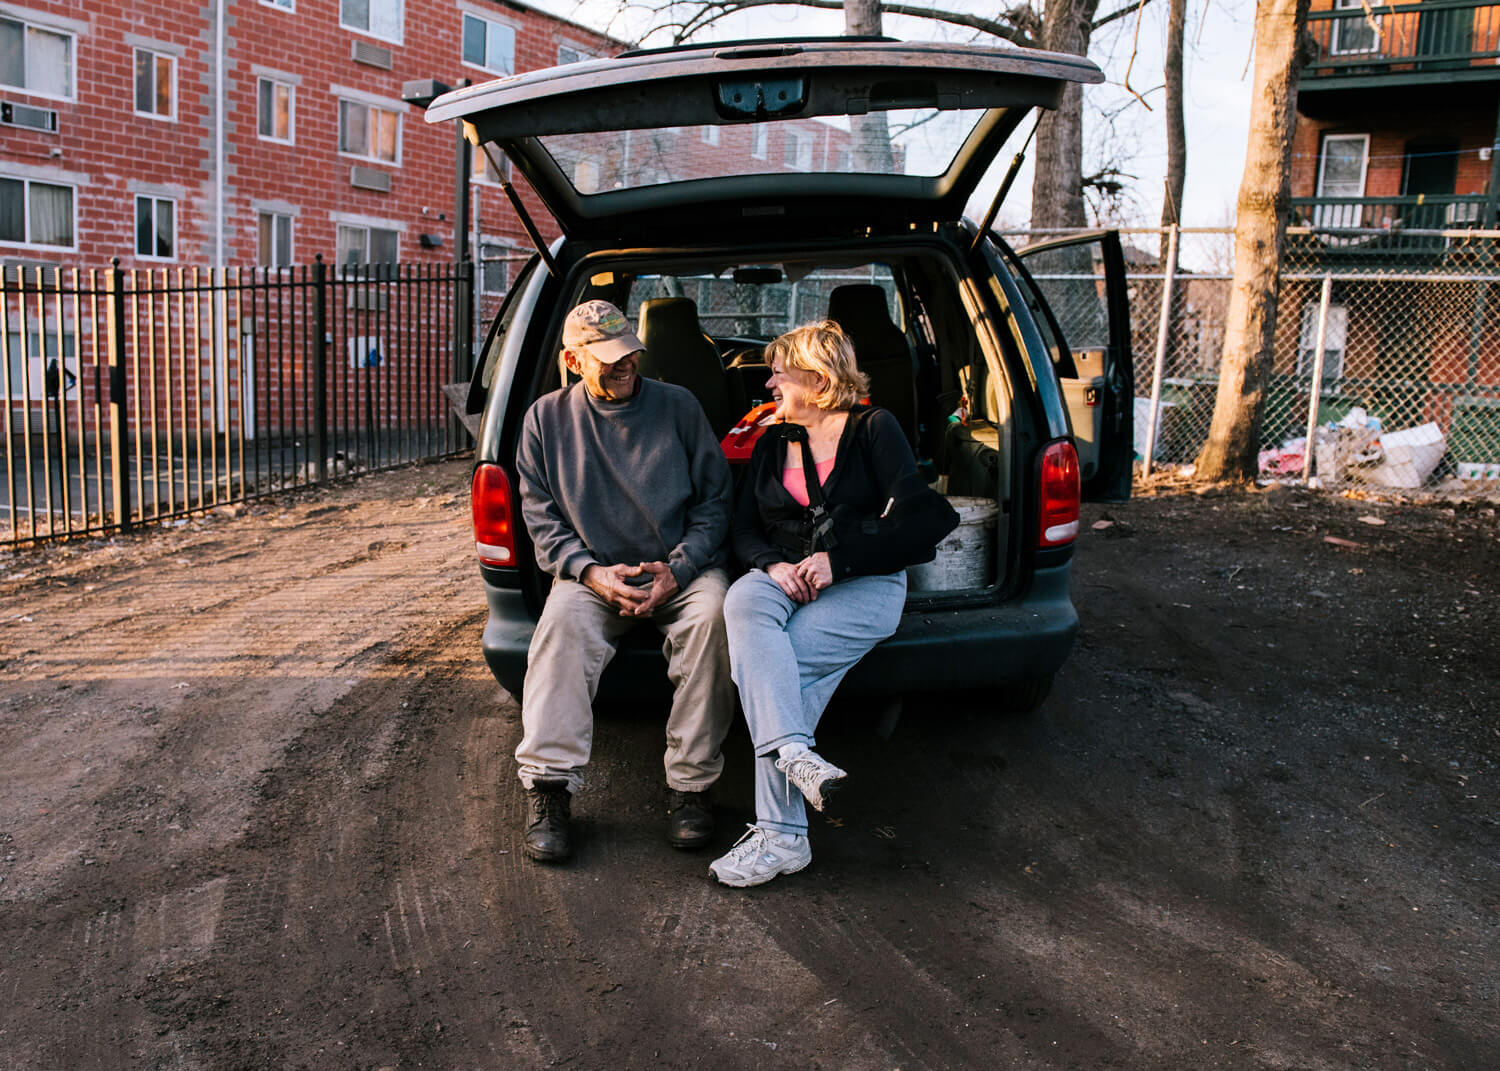 man and woman sitting in the back of a van